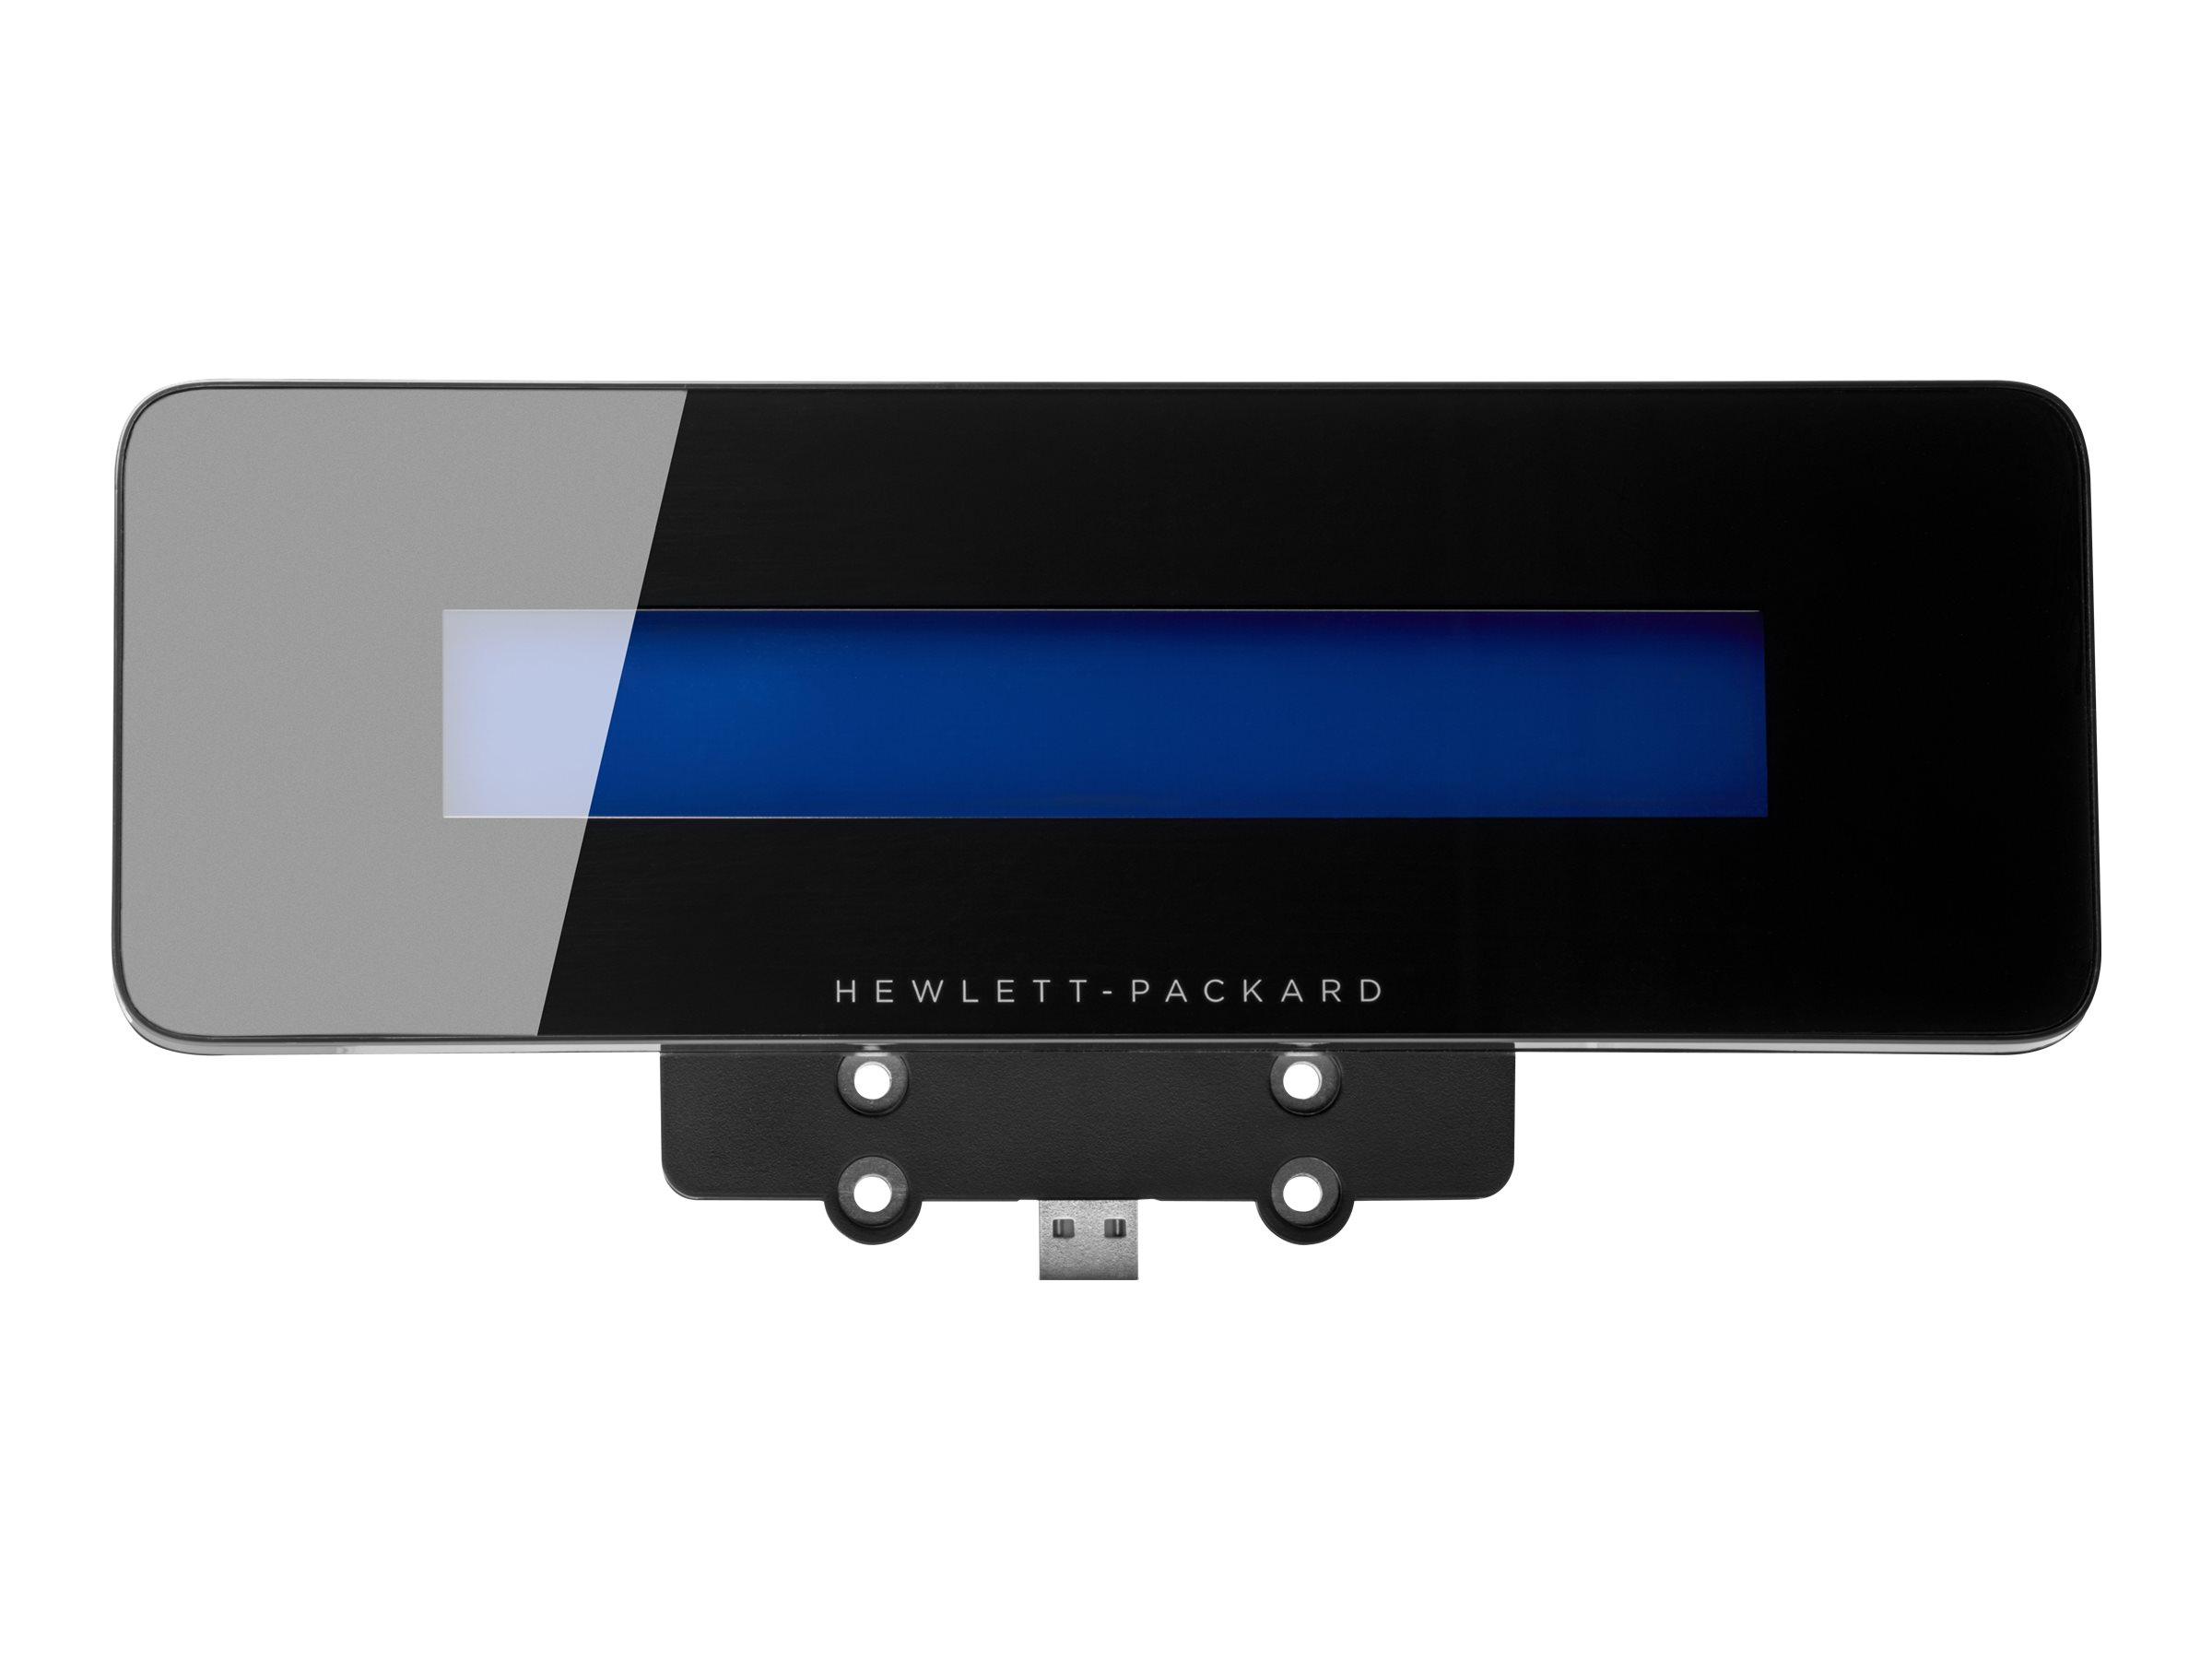 HP Engage One Top Mount Customer Facing Display - Kundenanzeige - 480 x 64 - 600 cd/m² - USB - Ebony Black